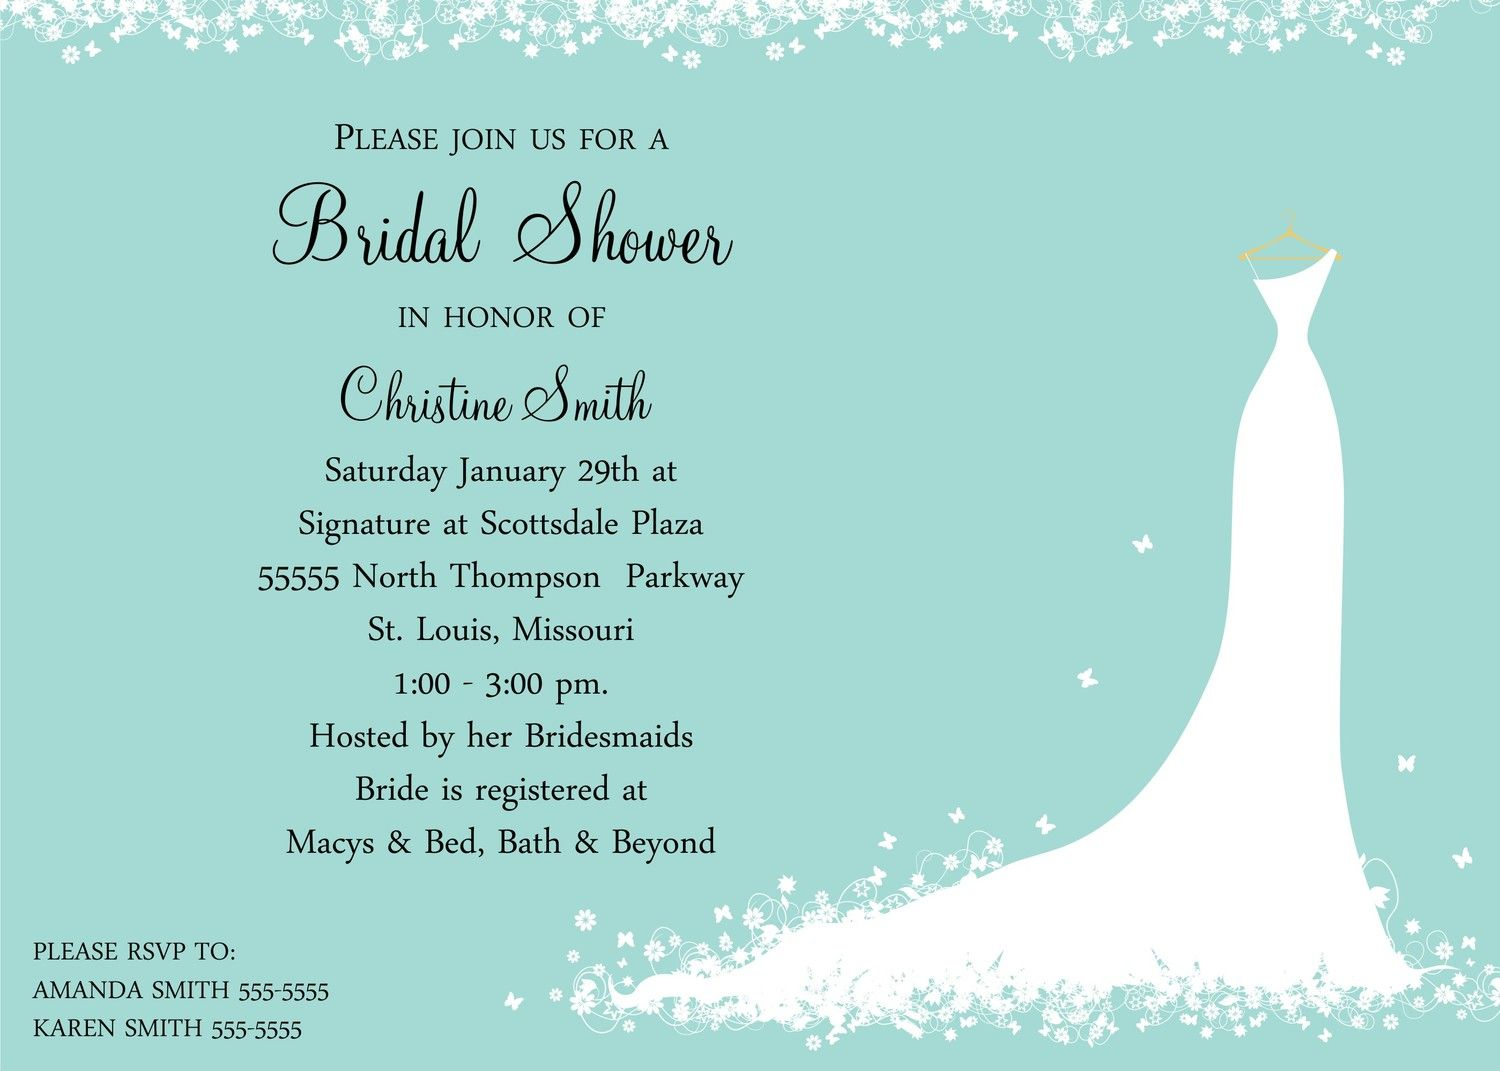 44b578744d656a529f65b46e1564c660 41 best bridal shower invitations images on pinterest,Words For Bridal Shower Invitation